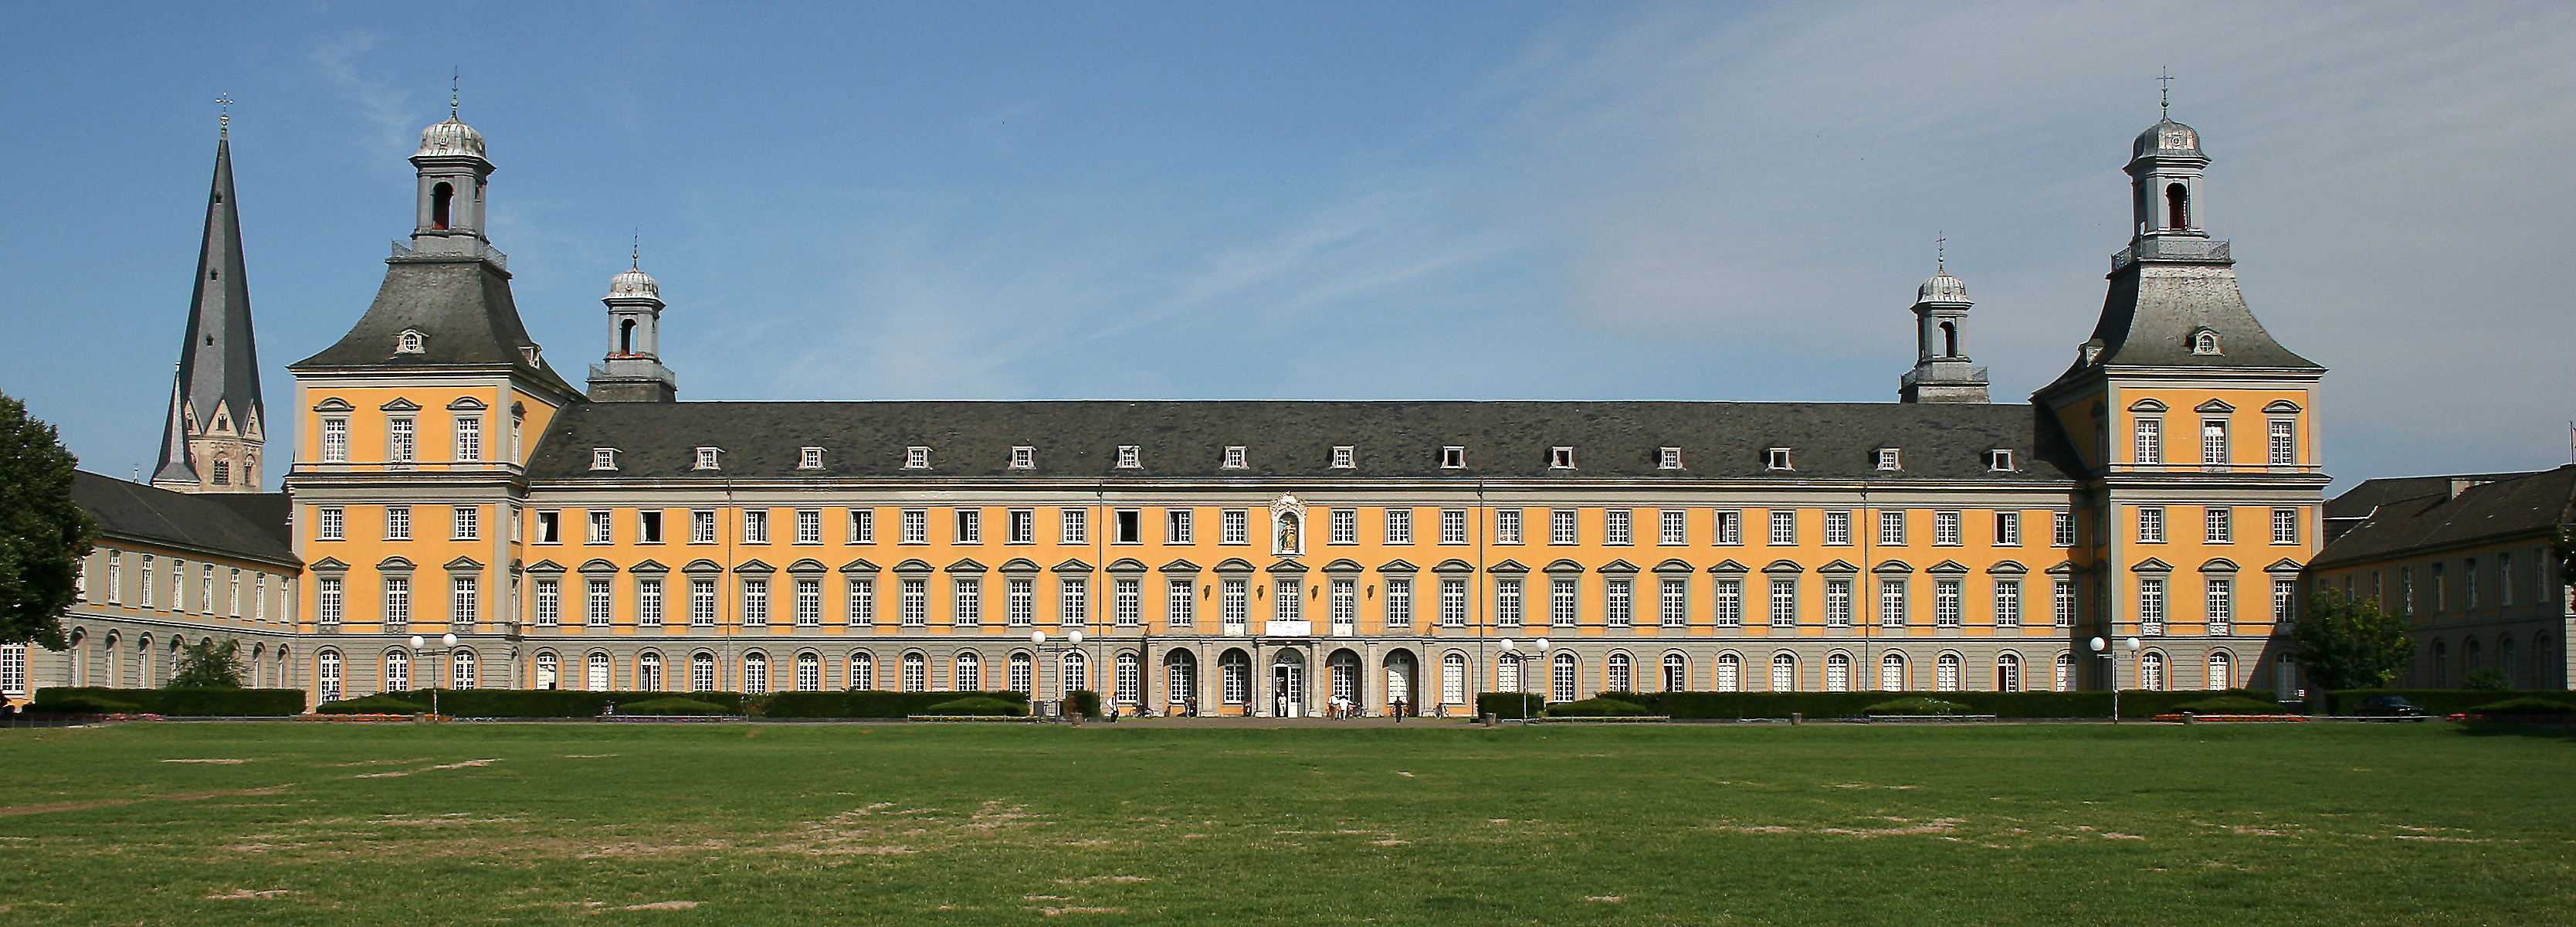 https://upload.wikimedia.org/wikipedia/commons/1/12/Universit%C3%A4t_Bonn.jpg